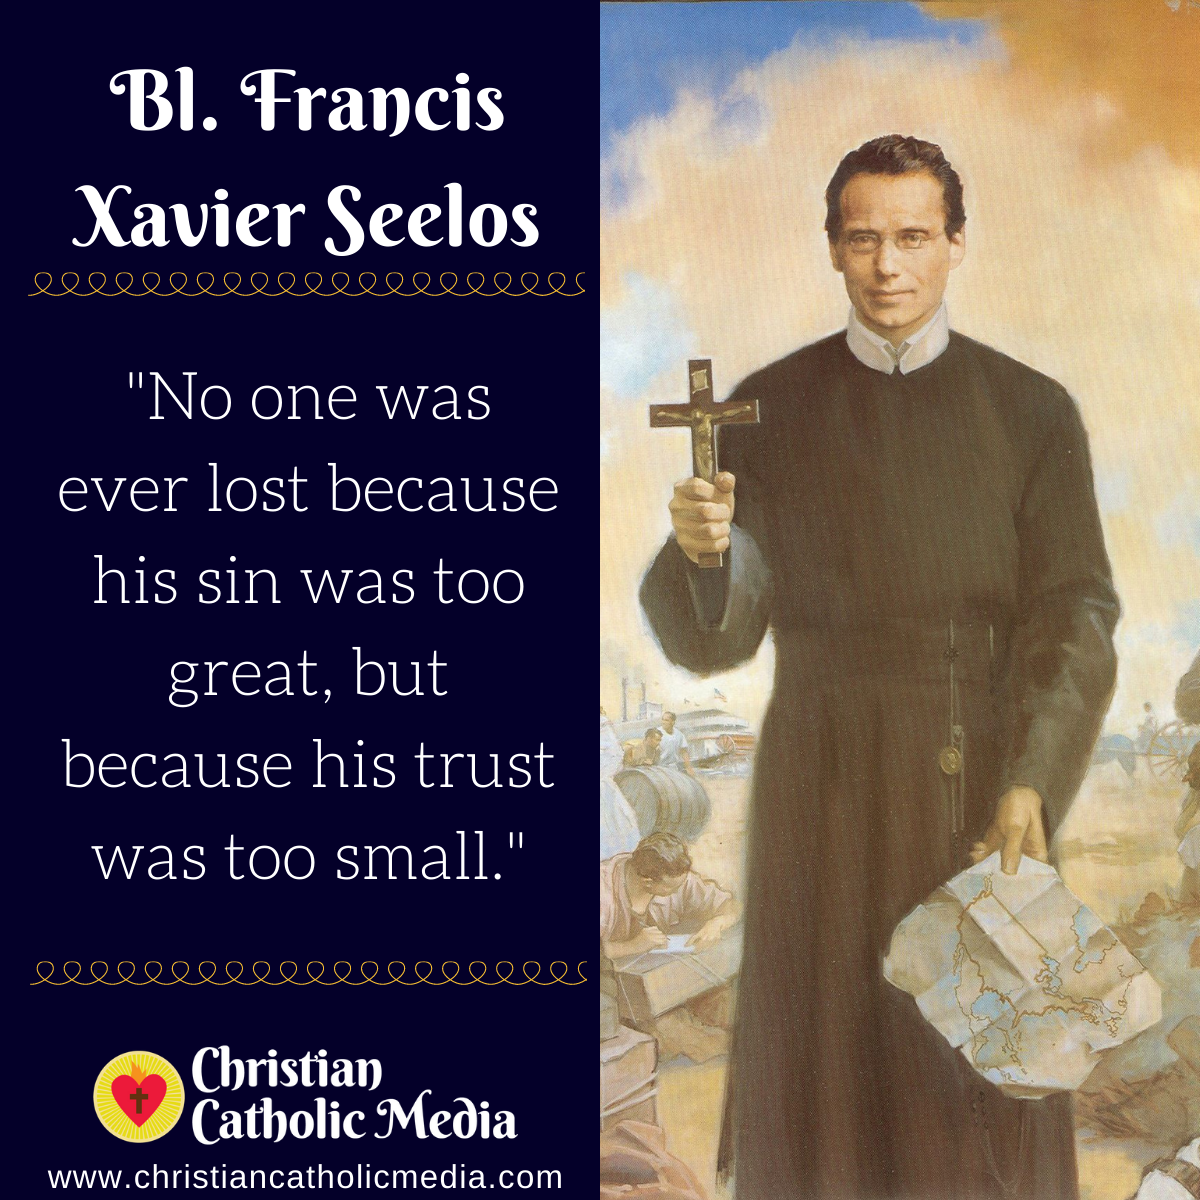 Bl. Francis Xavier Seelos - Monday October 12, 2020